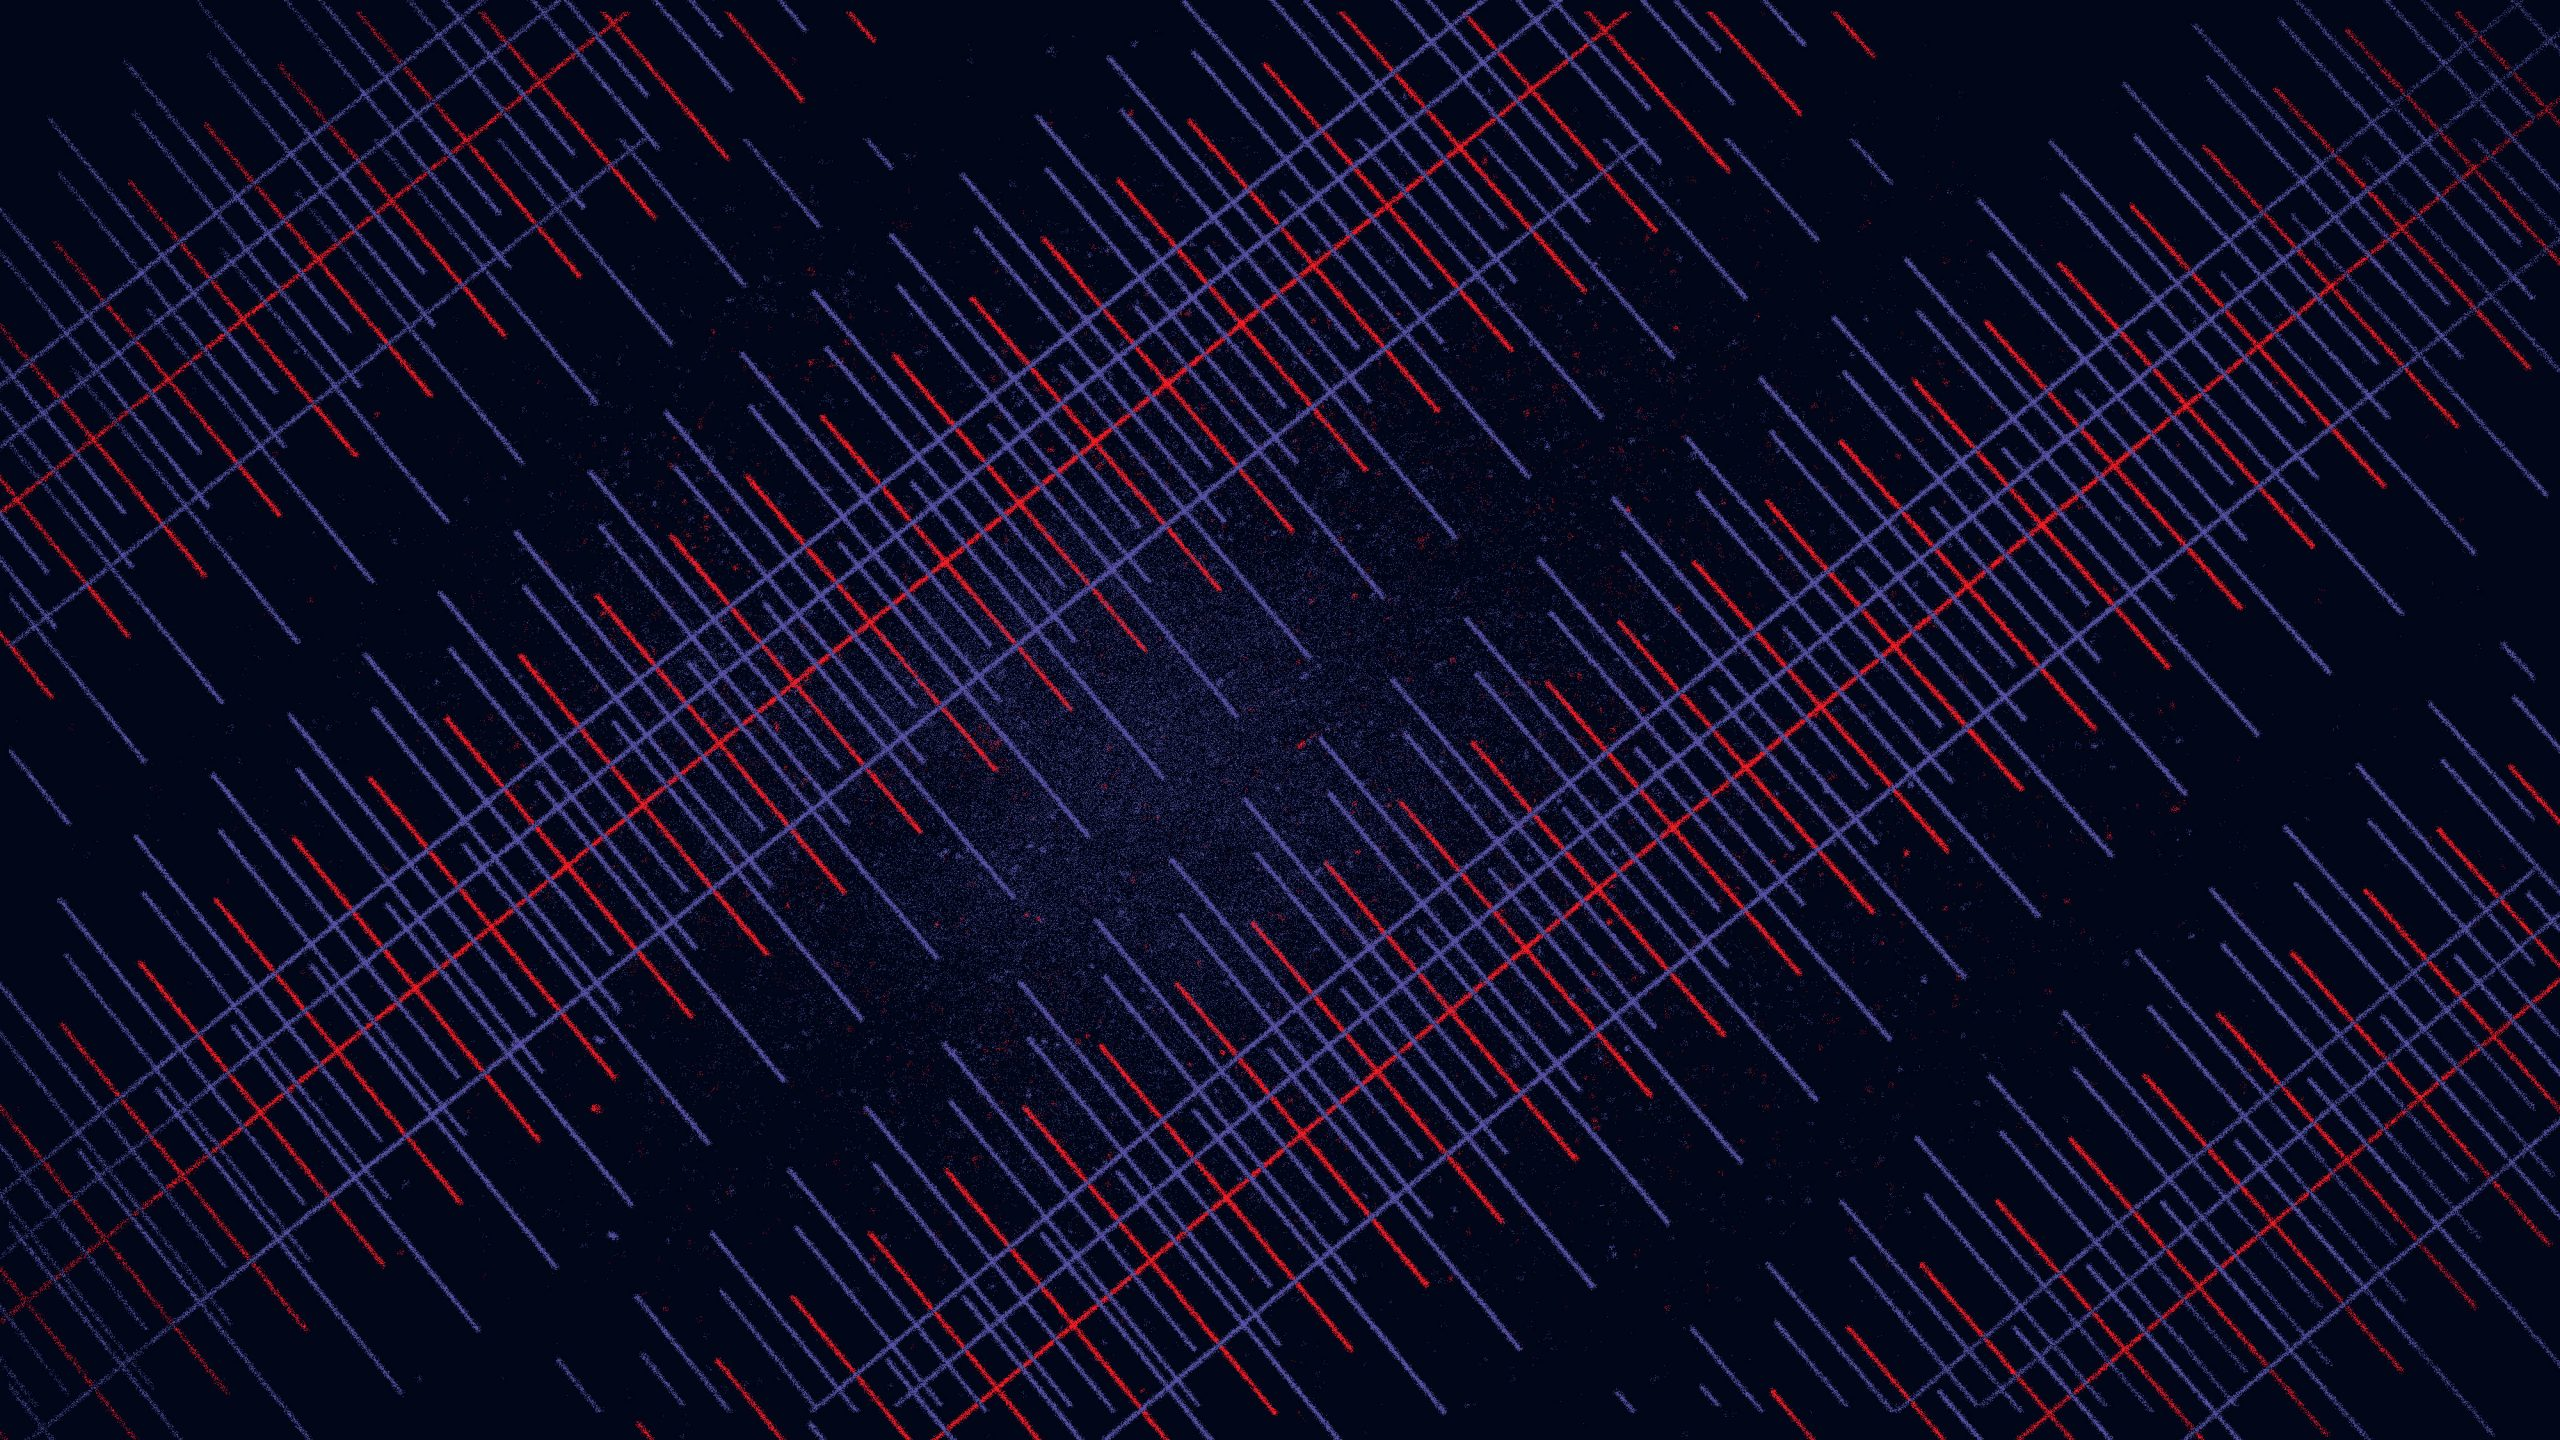 red-blue-lines-abstract-background-wallpaper